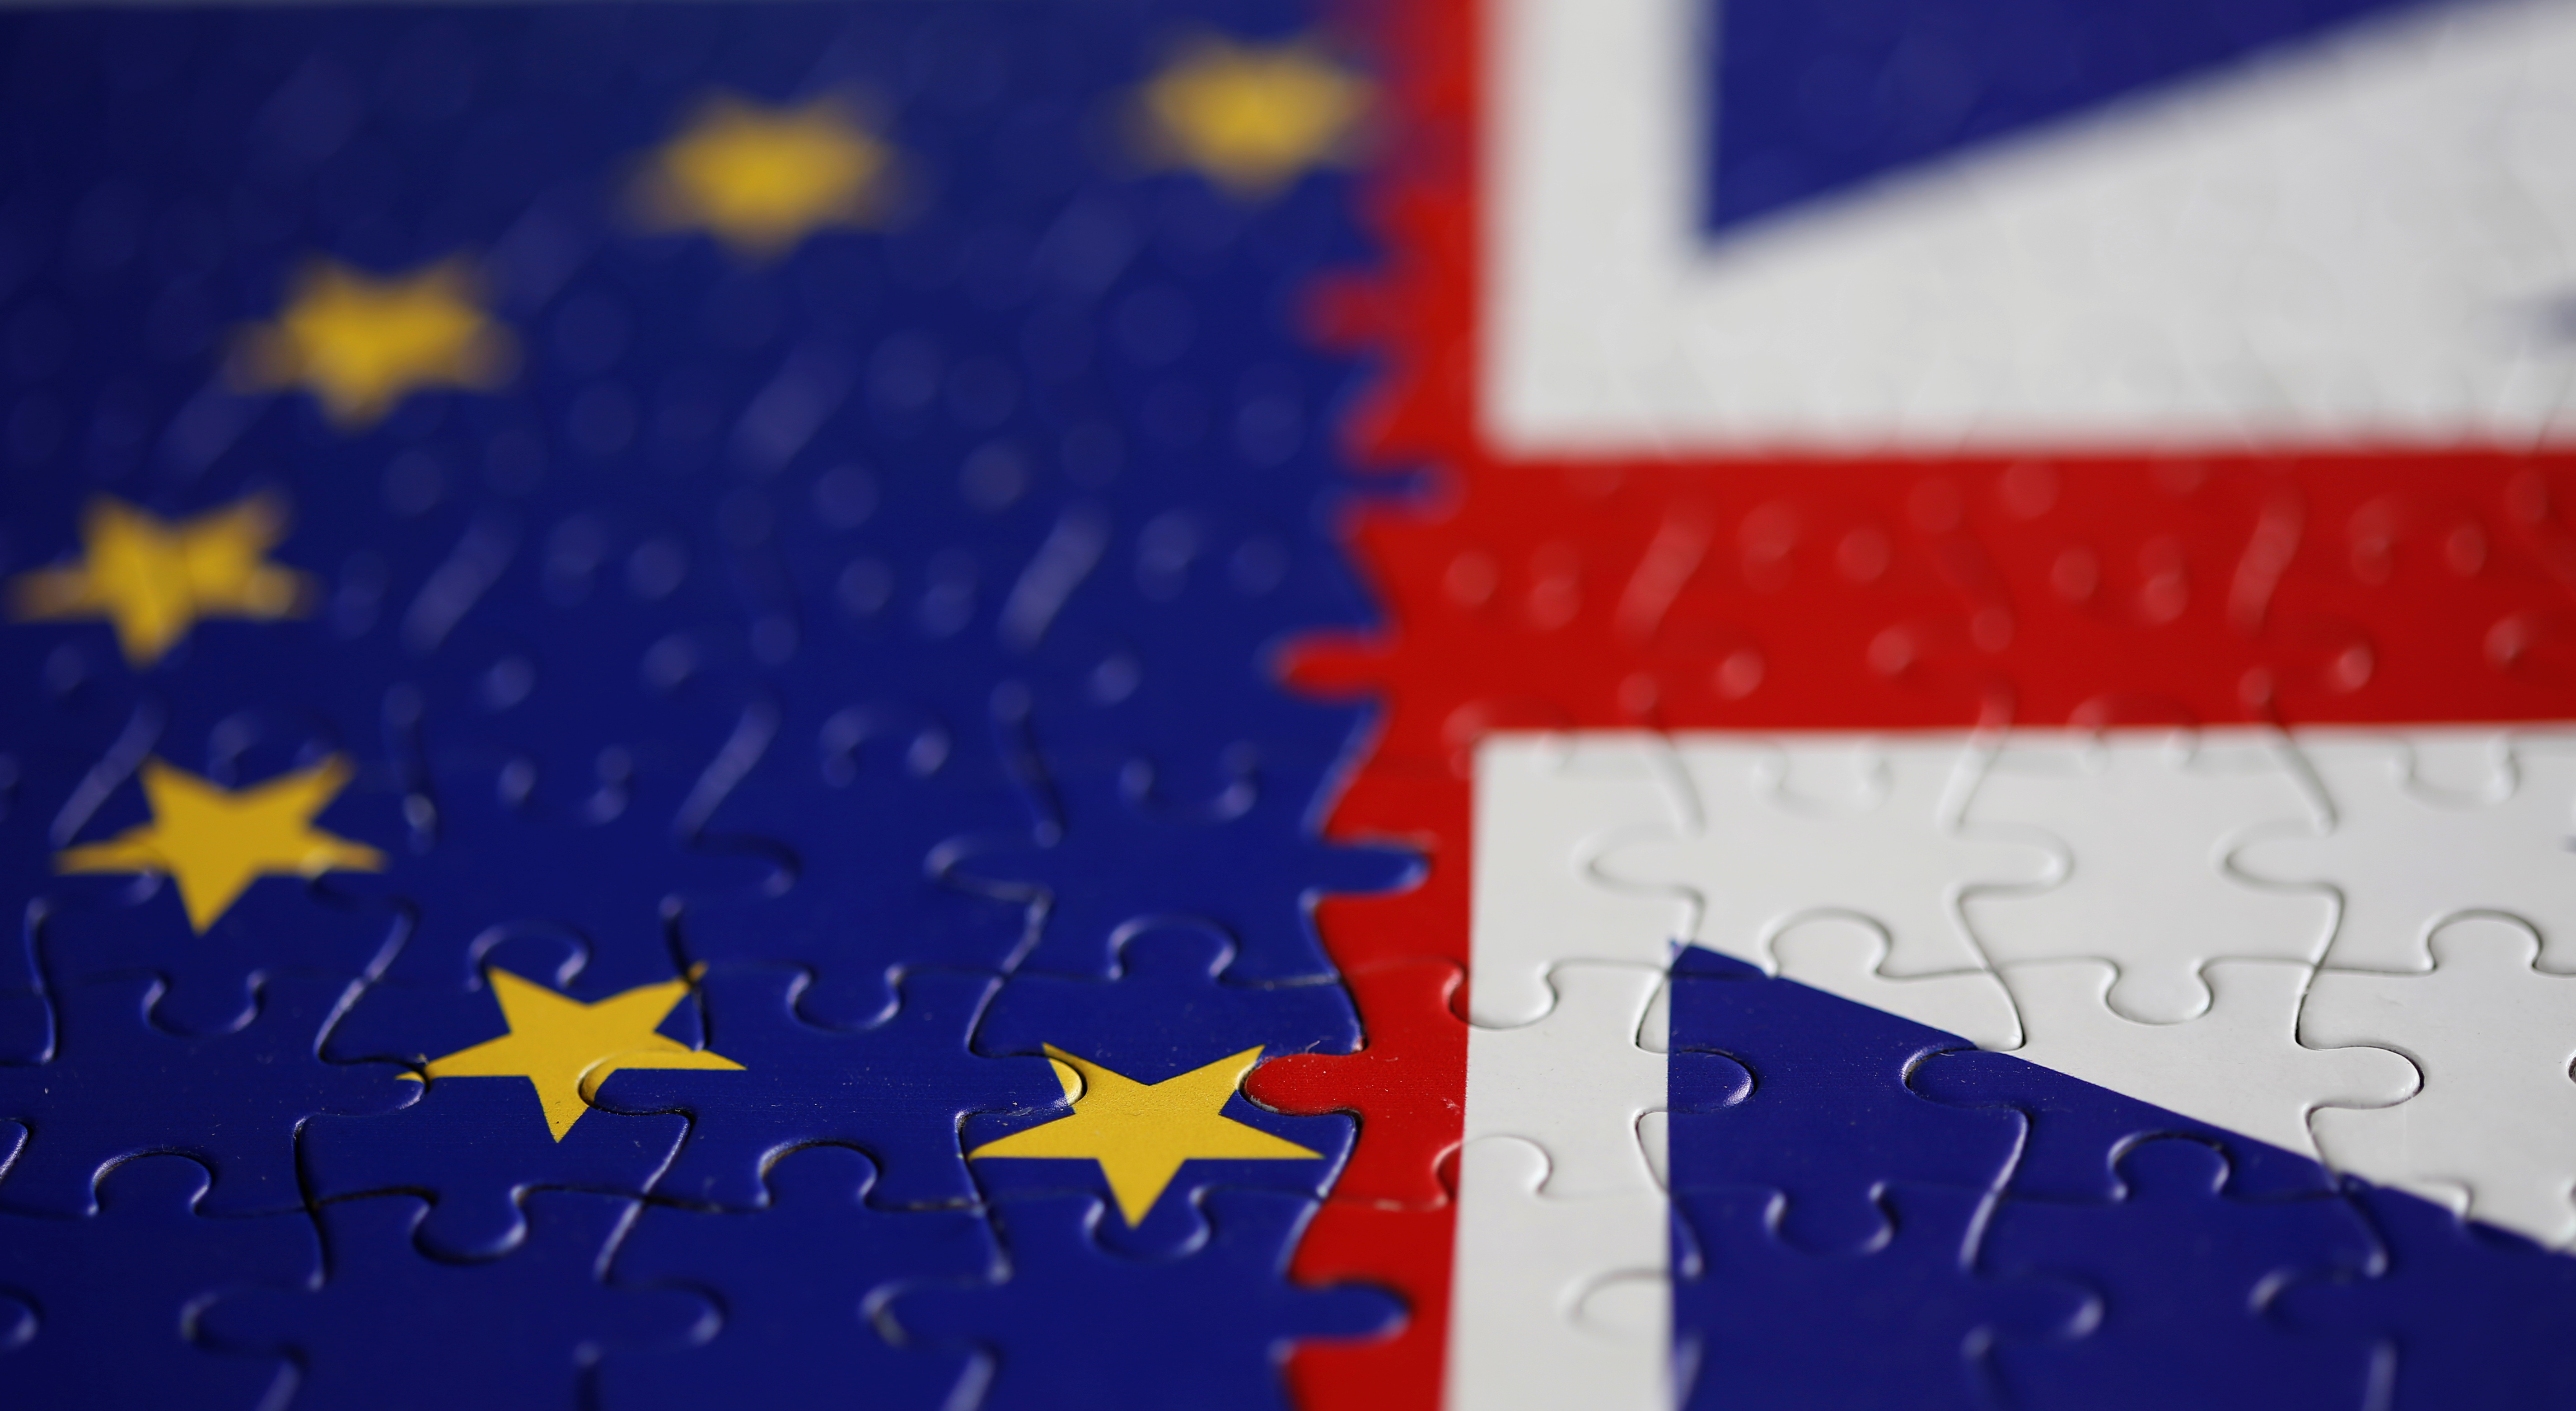 Puzzle with printed EU and UK flags is seen in this illustration taken November 13, 2019. REUTERS/Dado Ruvic/Illustration